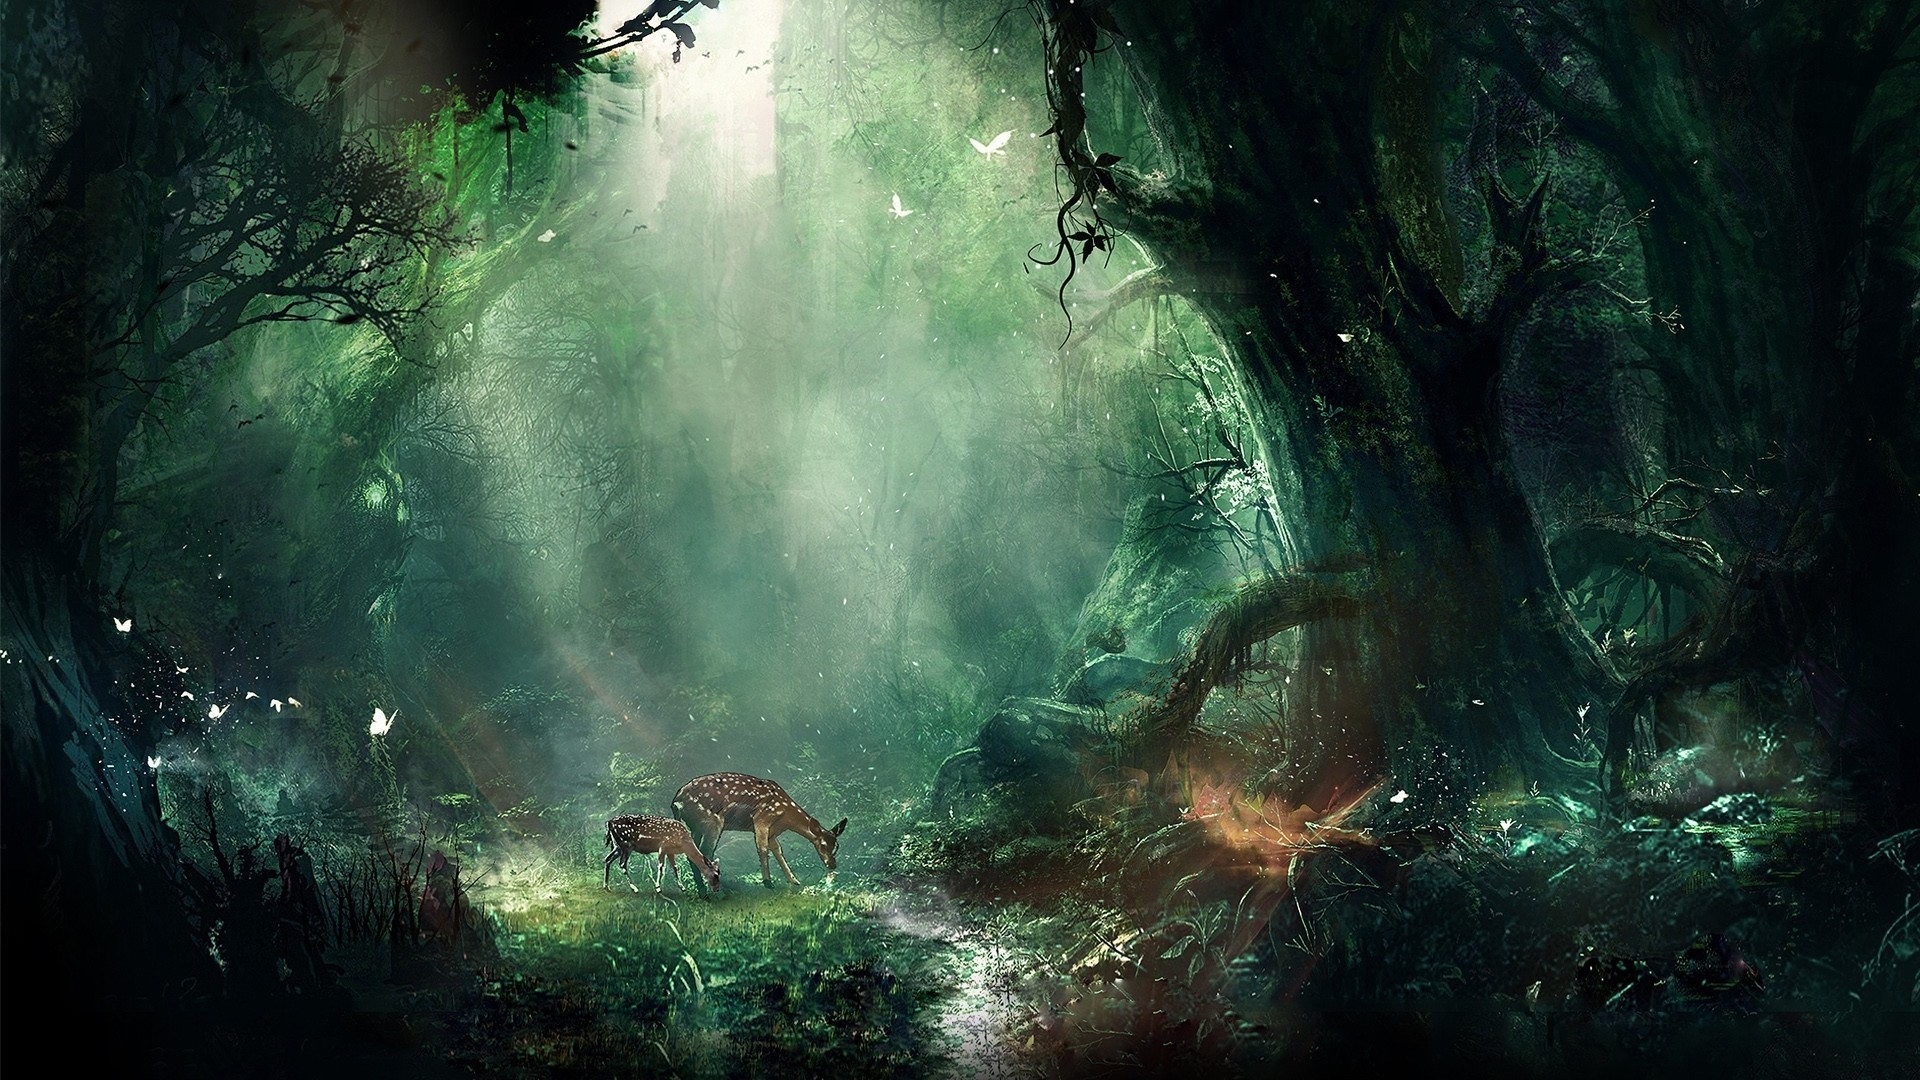 1920x1080 Hd Fantasy Wallpaper (81 Wallpapers)